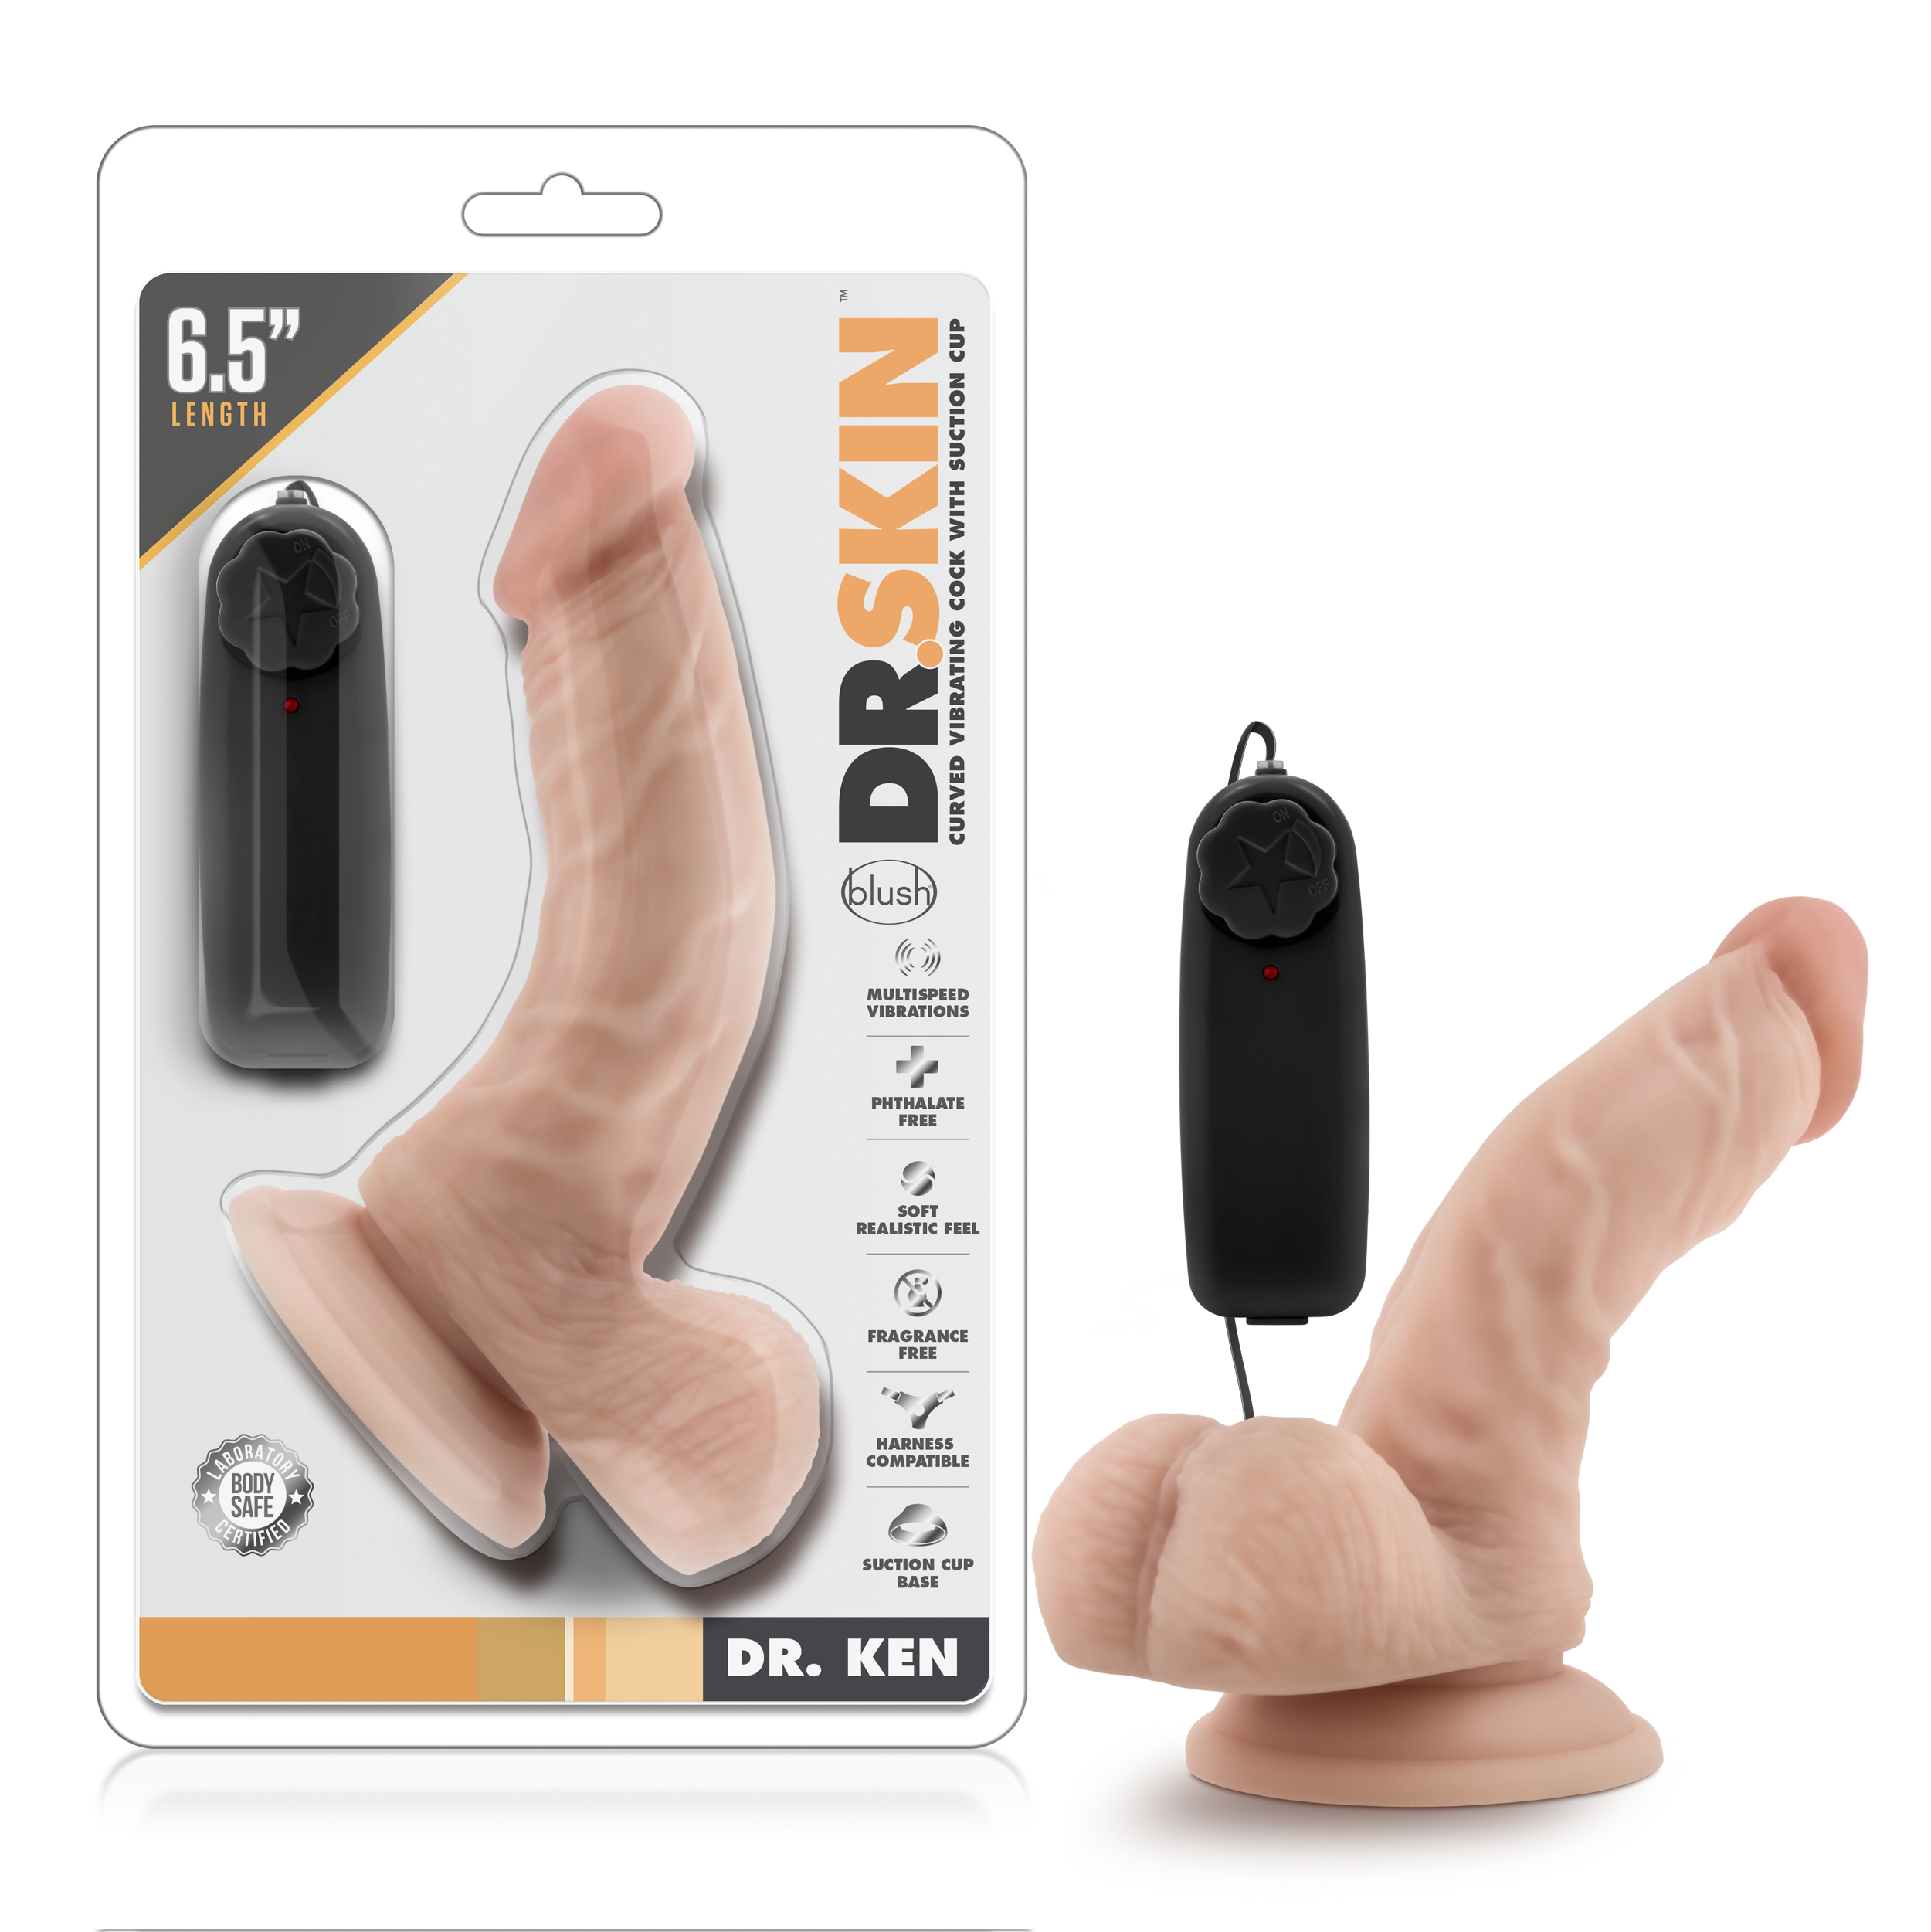 Dr. Skin - Dr. Ken - 6.5 Inch Vibrating Cock with Suction Cup - Vanilla